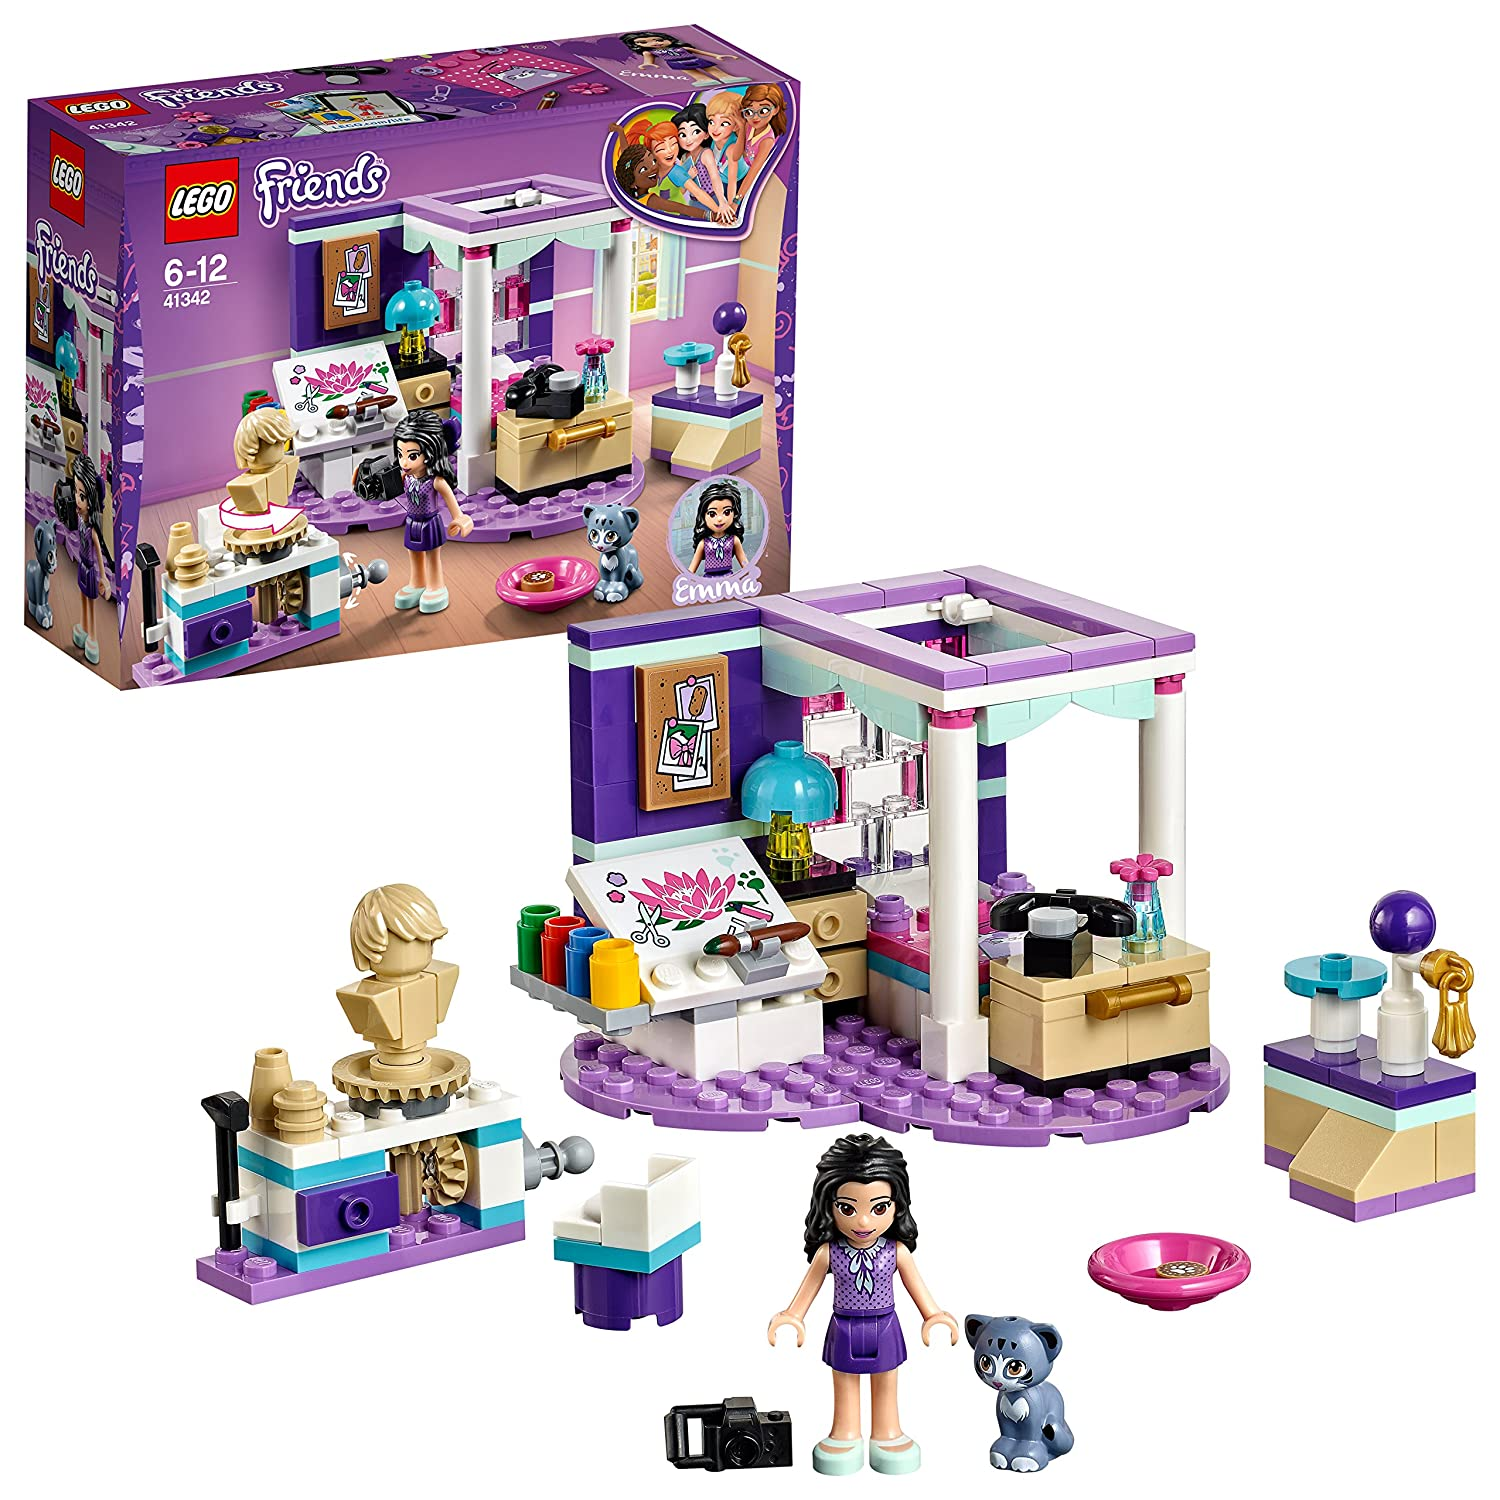 LEGO 41342 Friends Emma's Deluxe Bedroom Building Set